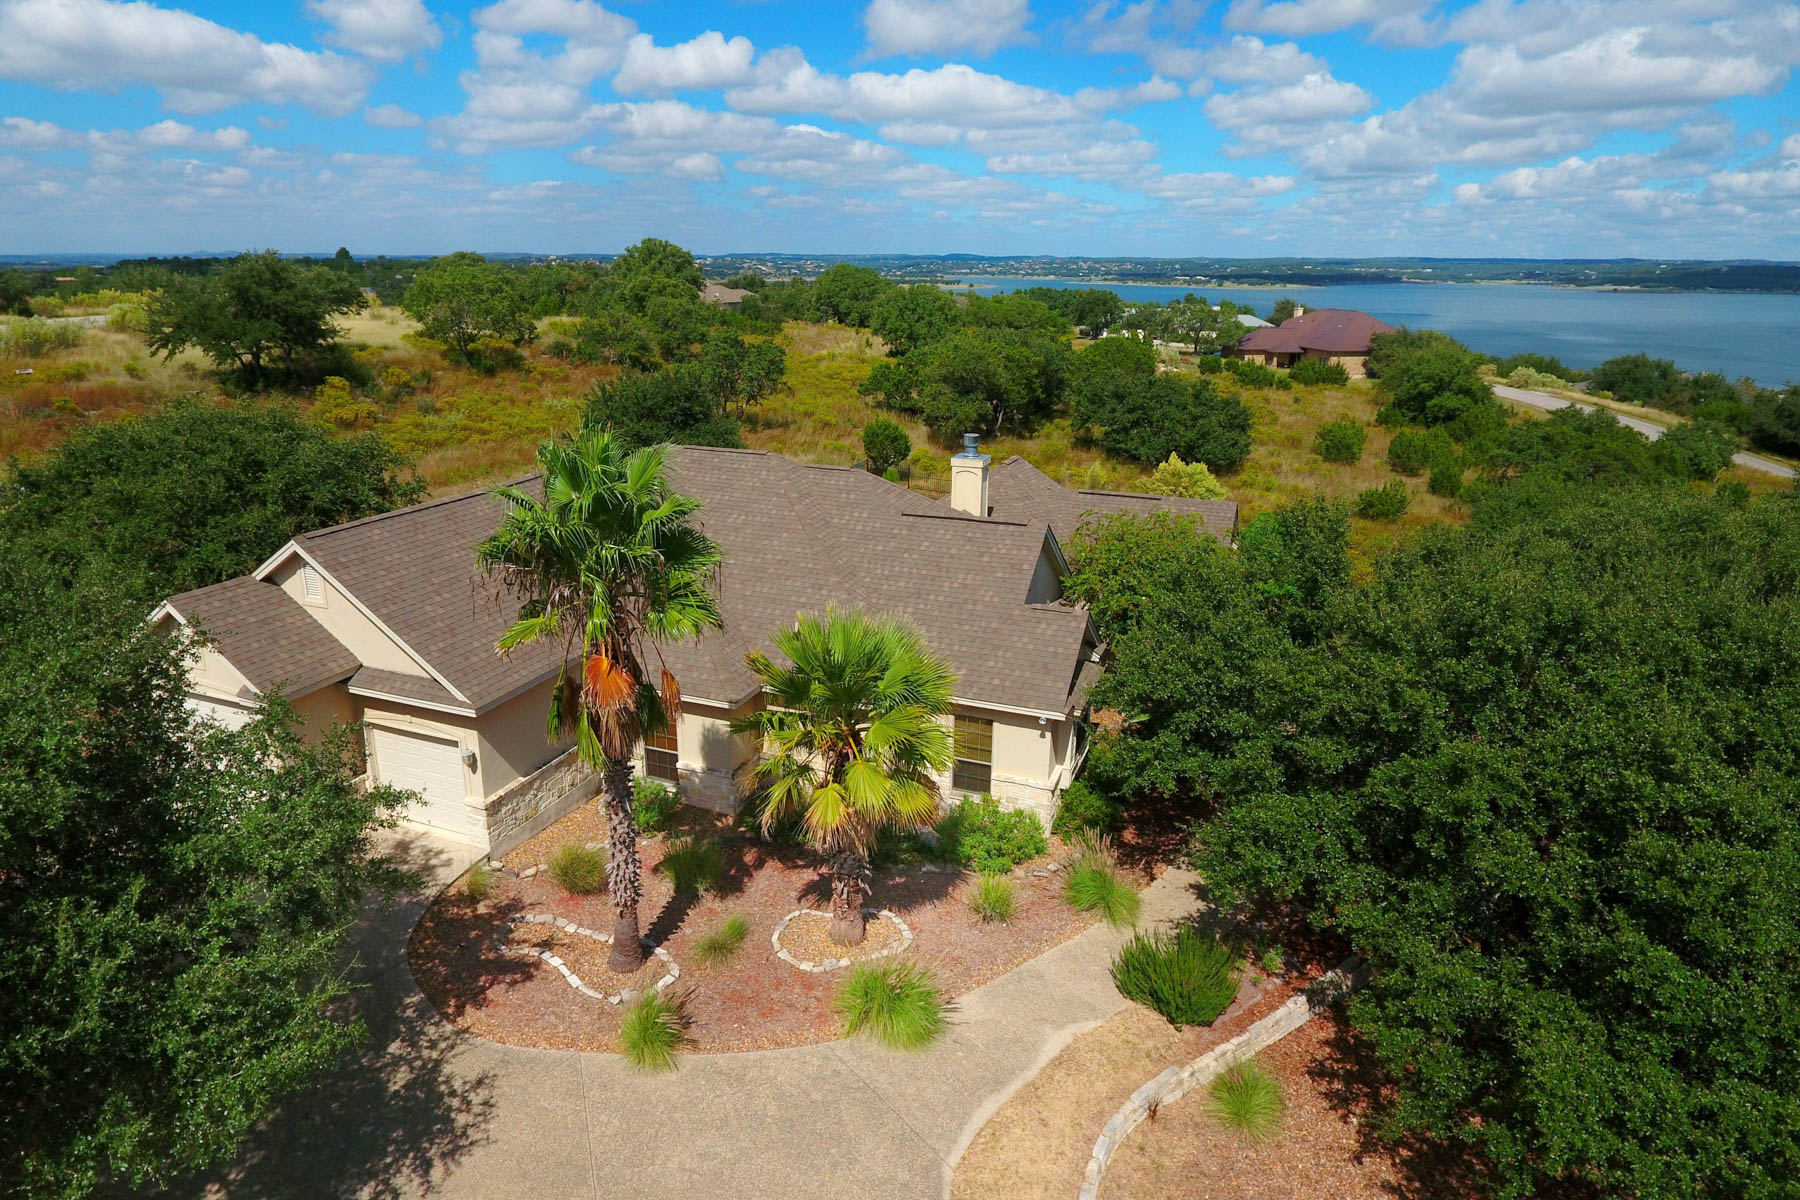 Single Family Home for Sale at Lake Views in Oak Shores Estates 195 Scarlet Ct Canyon Lake, Texas 78133 United States